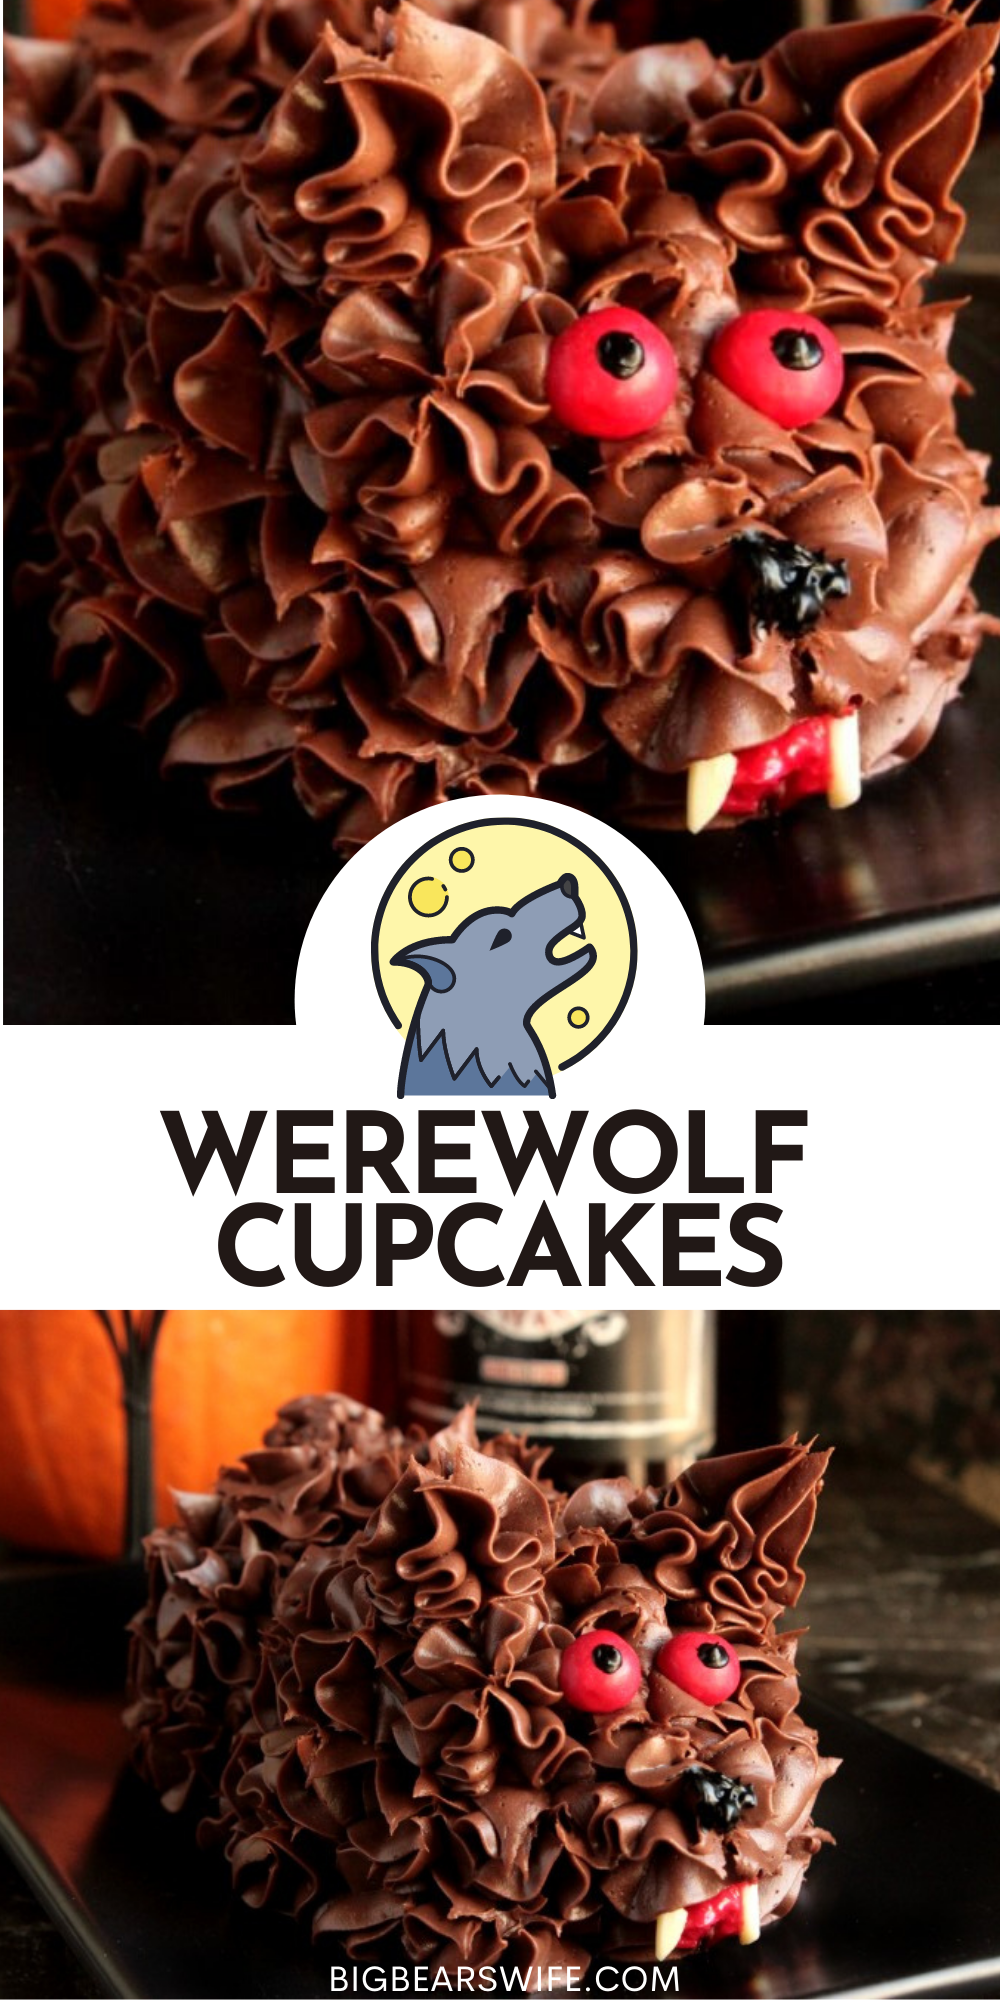 Cupcakes and Werewolf go hand and hand for Halloween! We're taking two cupcakes and turning them into this cute little Werewolf Cupcakes! via @bigbearswife